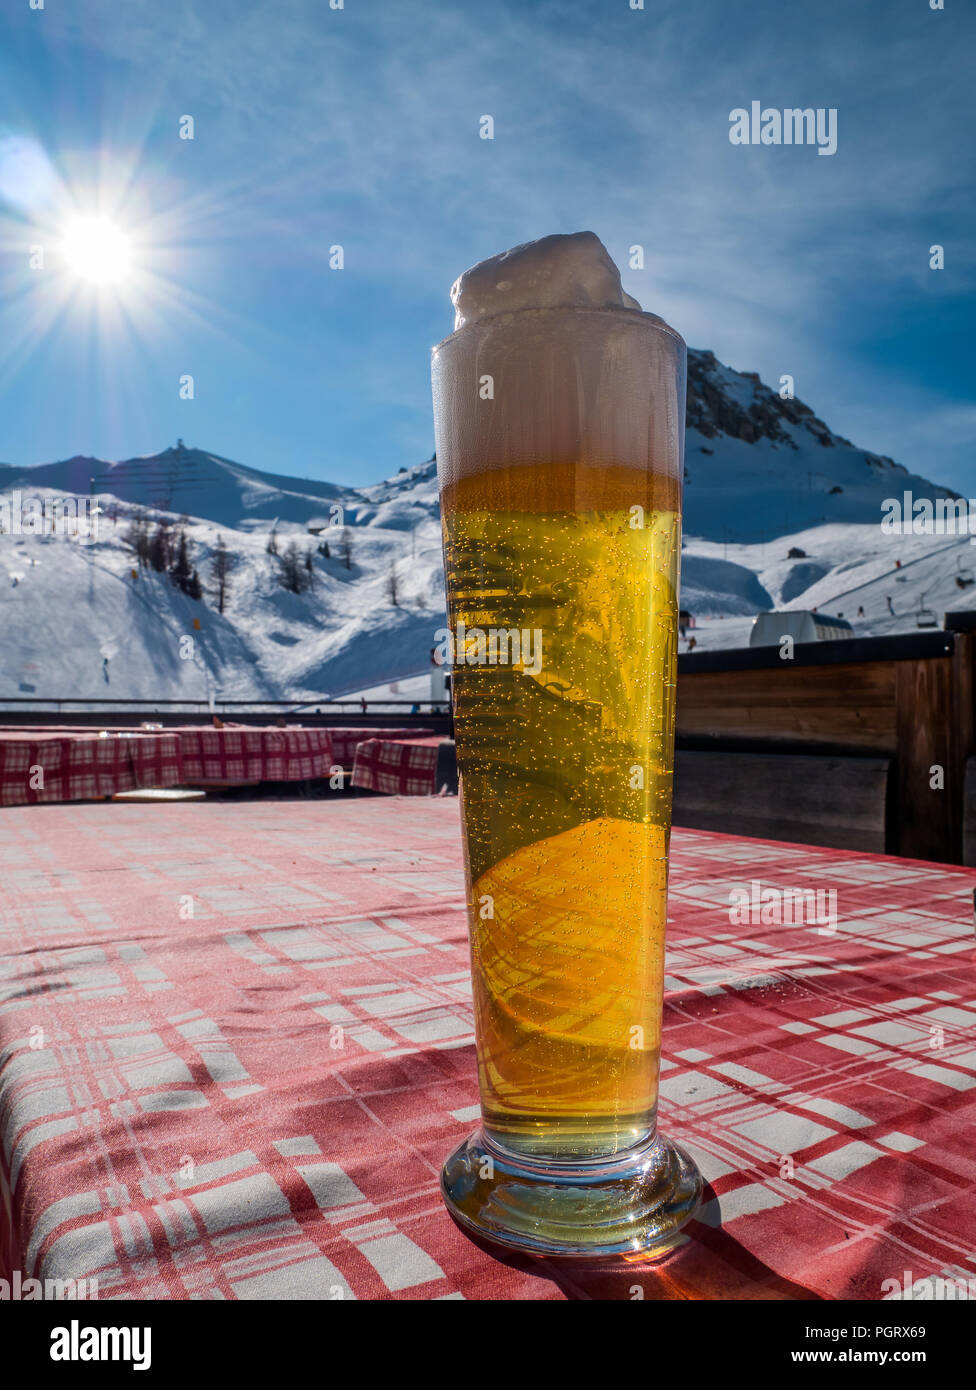 Large draft beer glass on a table in the alps. Ski hill or slope and sun light in background. - Stock Image